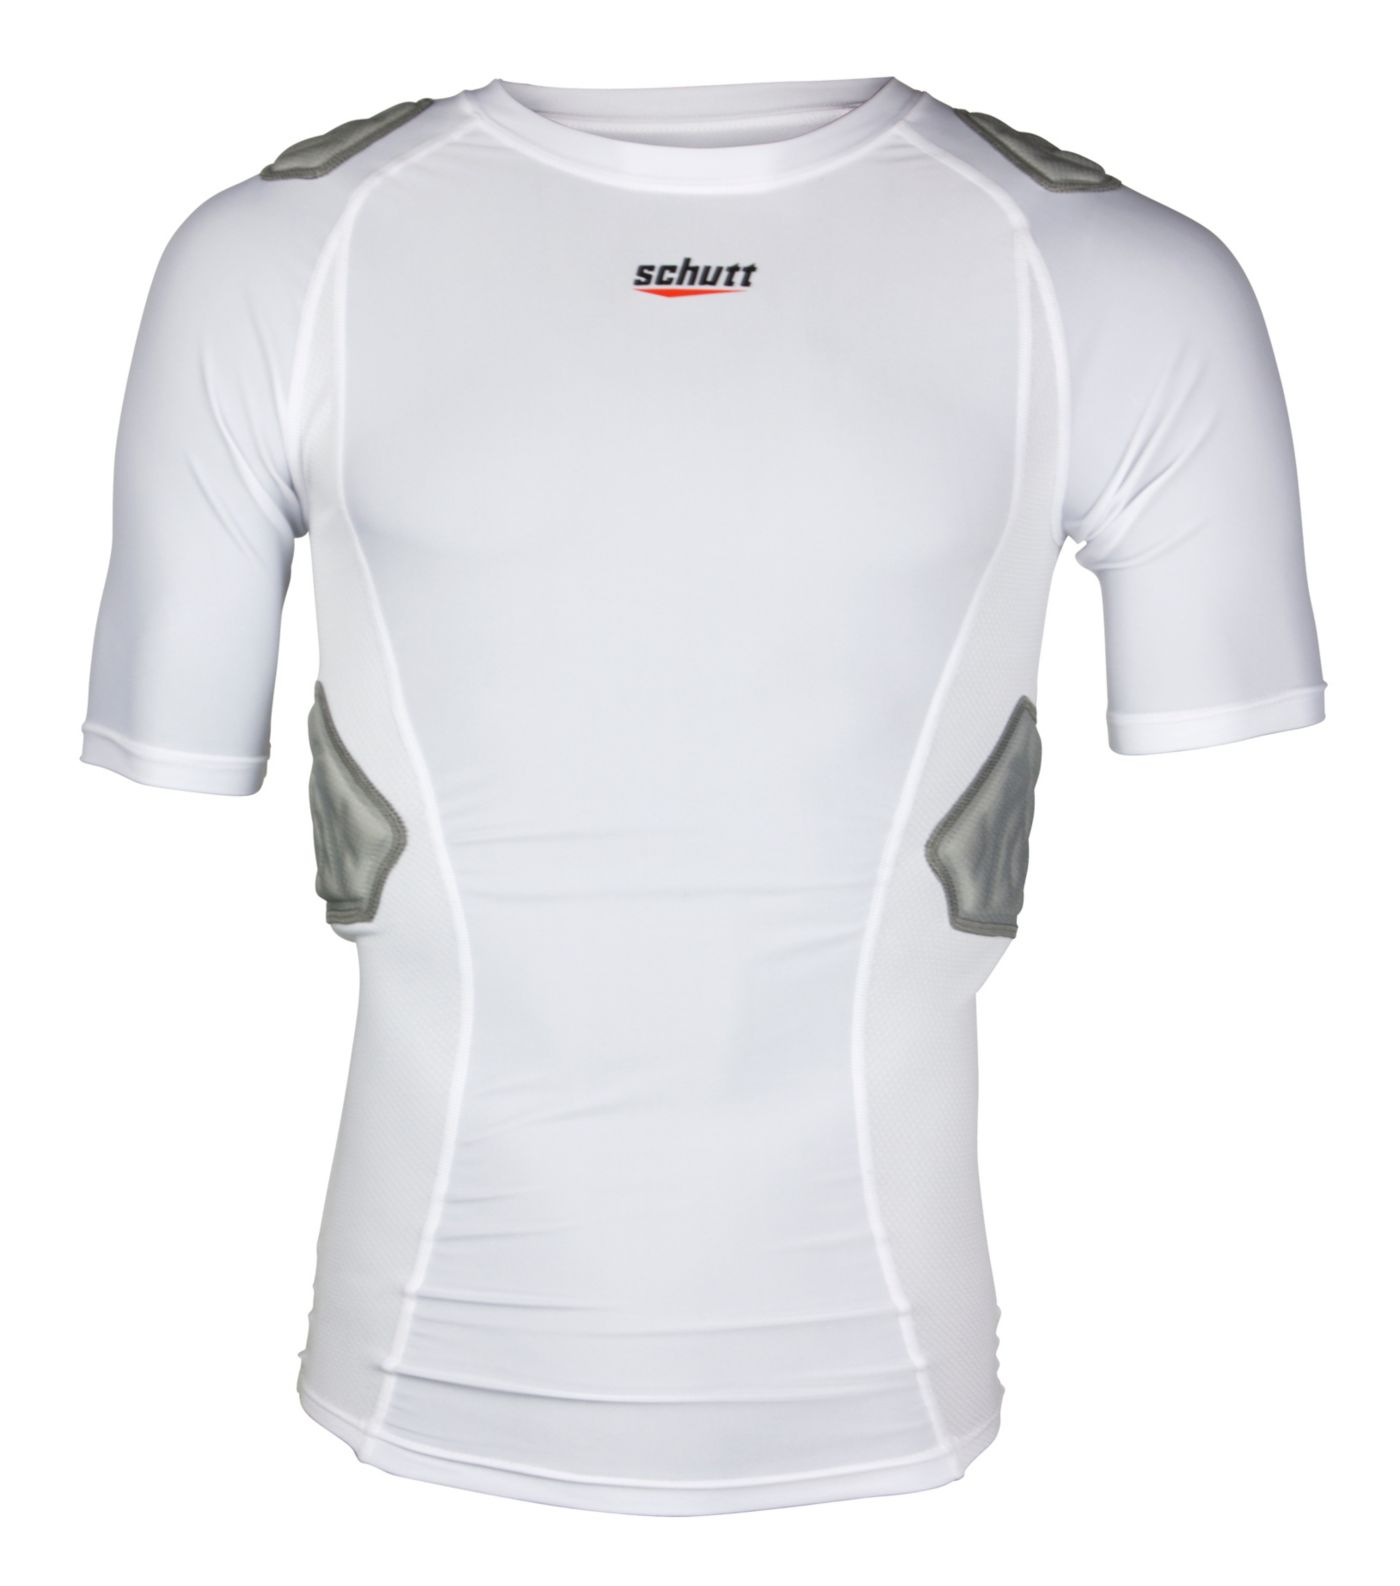 Schutt Youth Integrated Padded Shirt